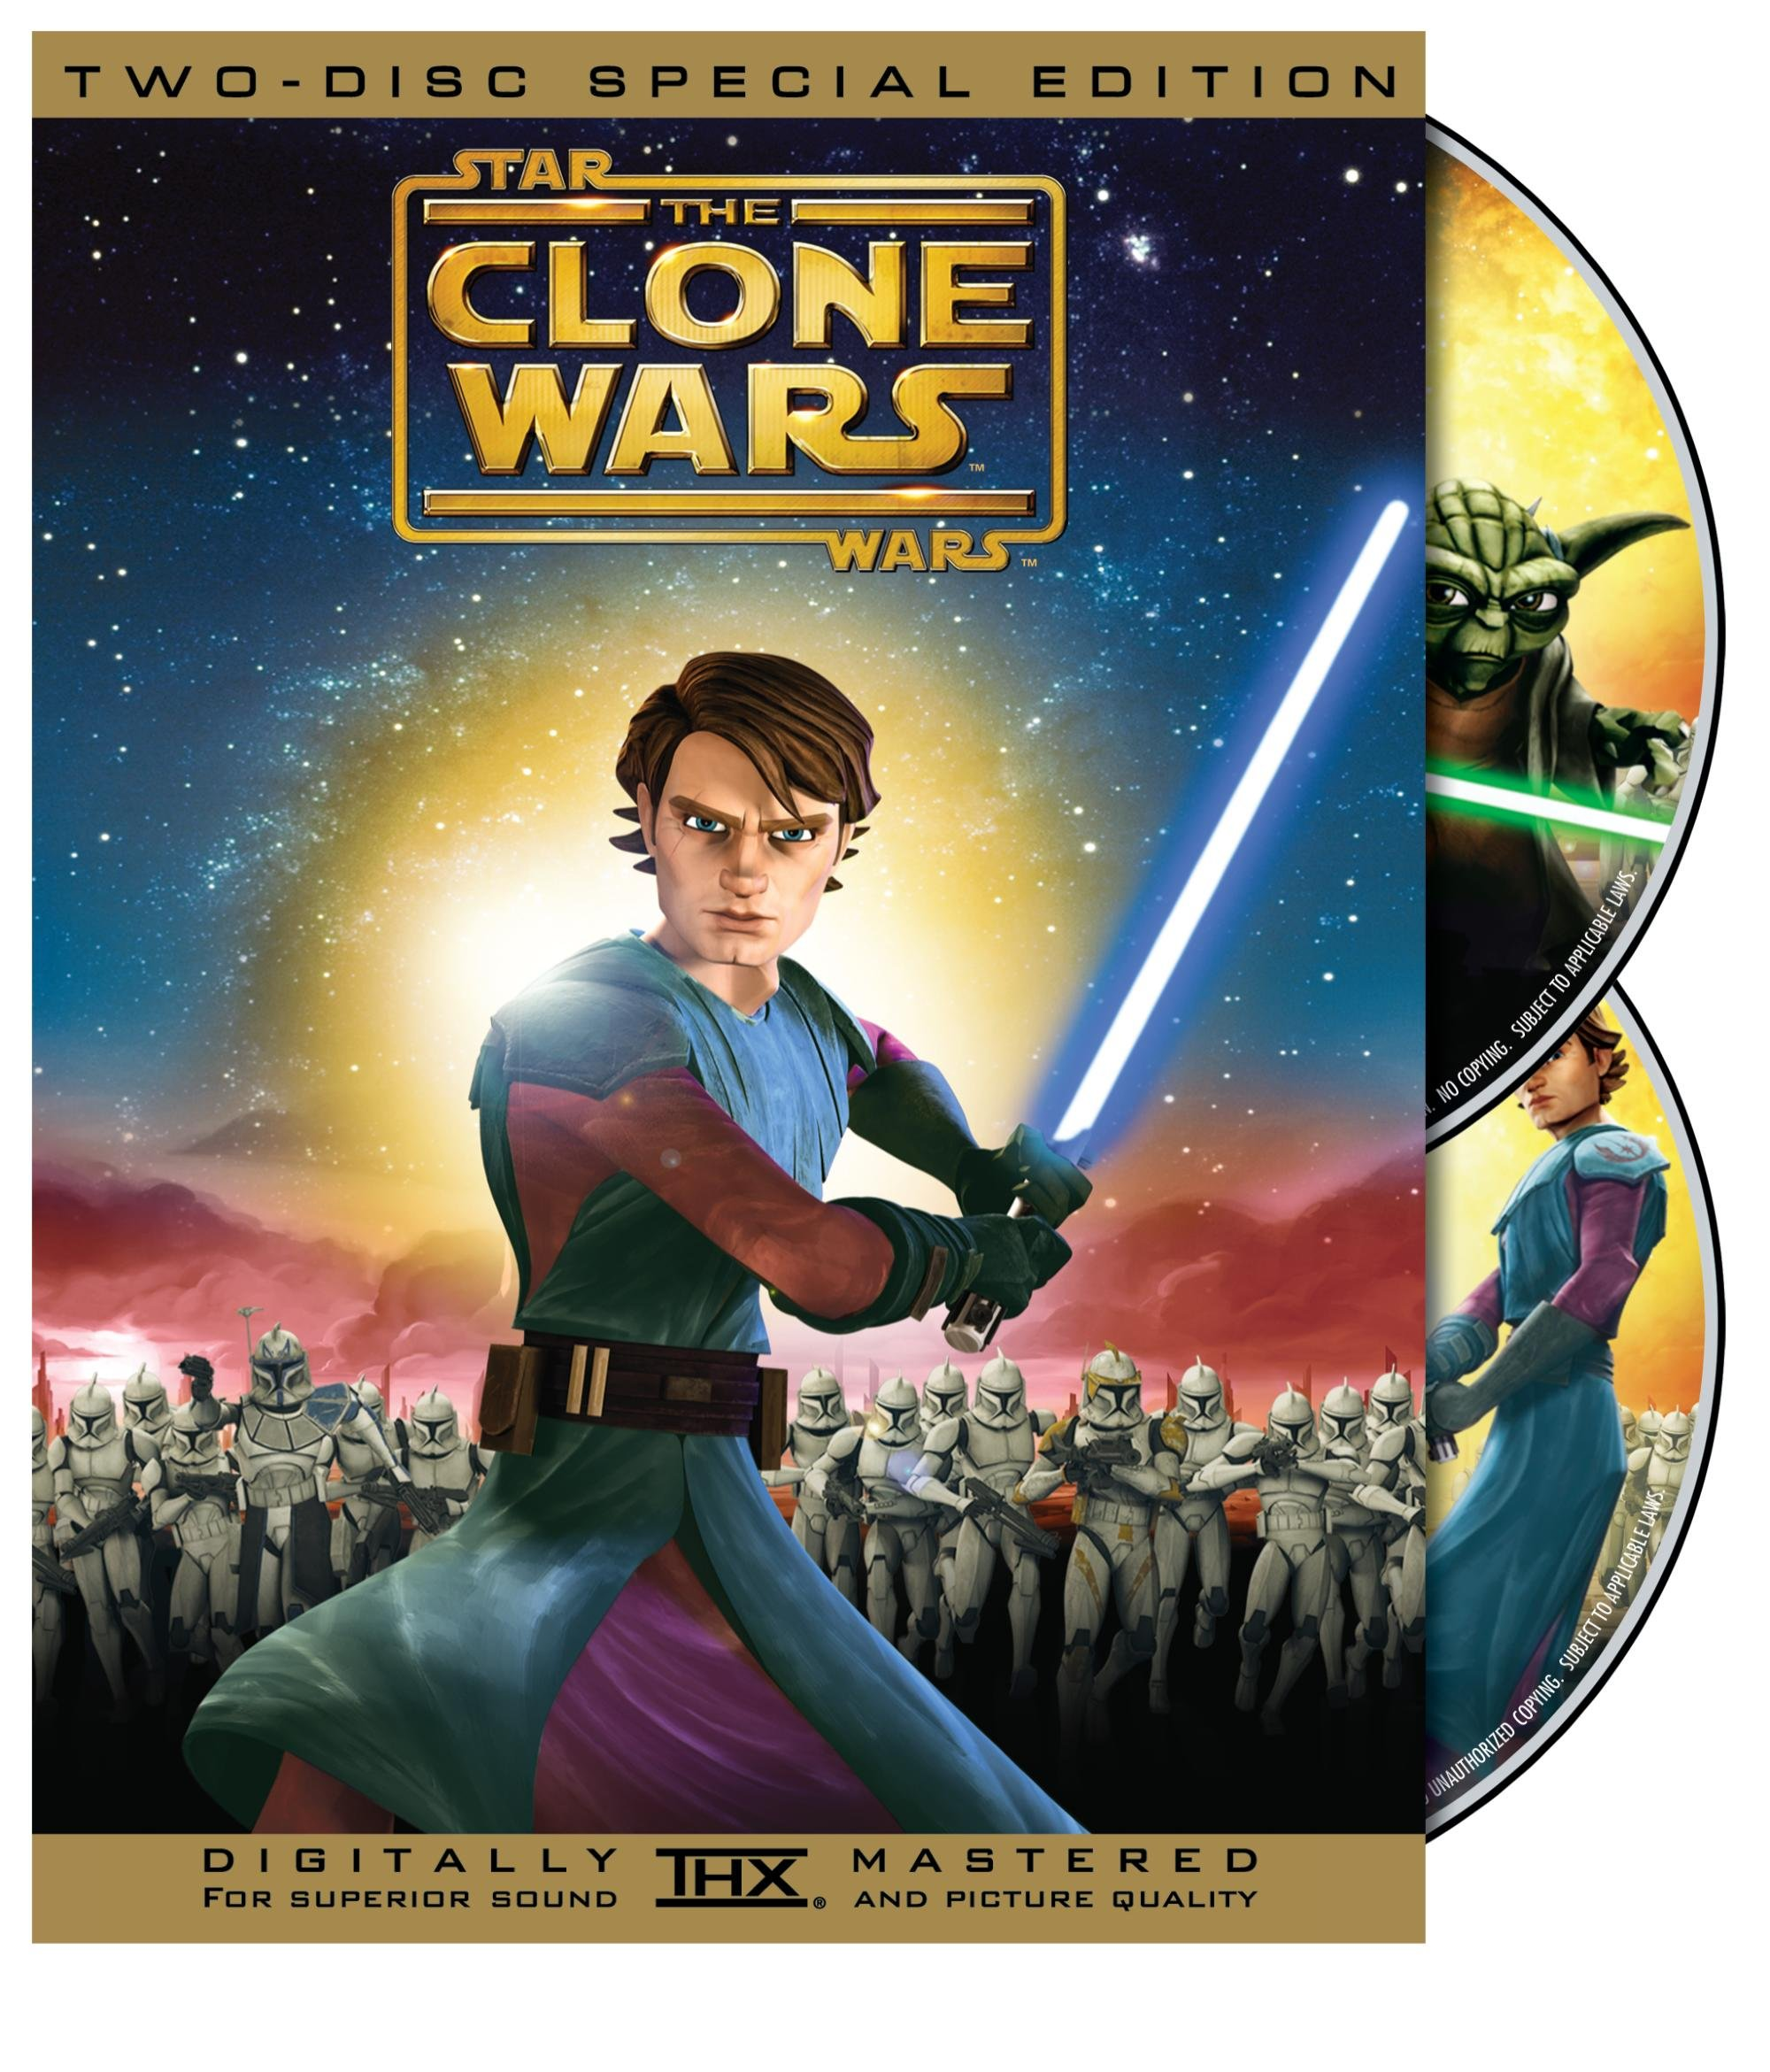 Star Wars: The Clone Wars (Two-Disc Special Edition) by Warner Brothers